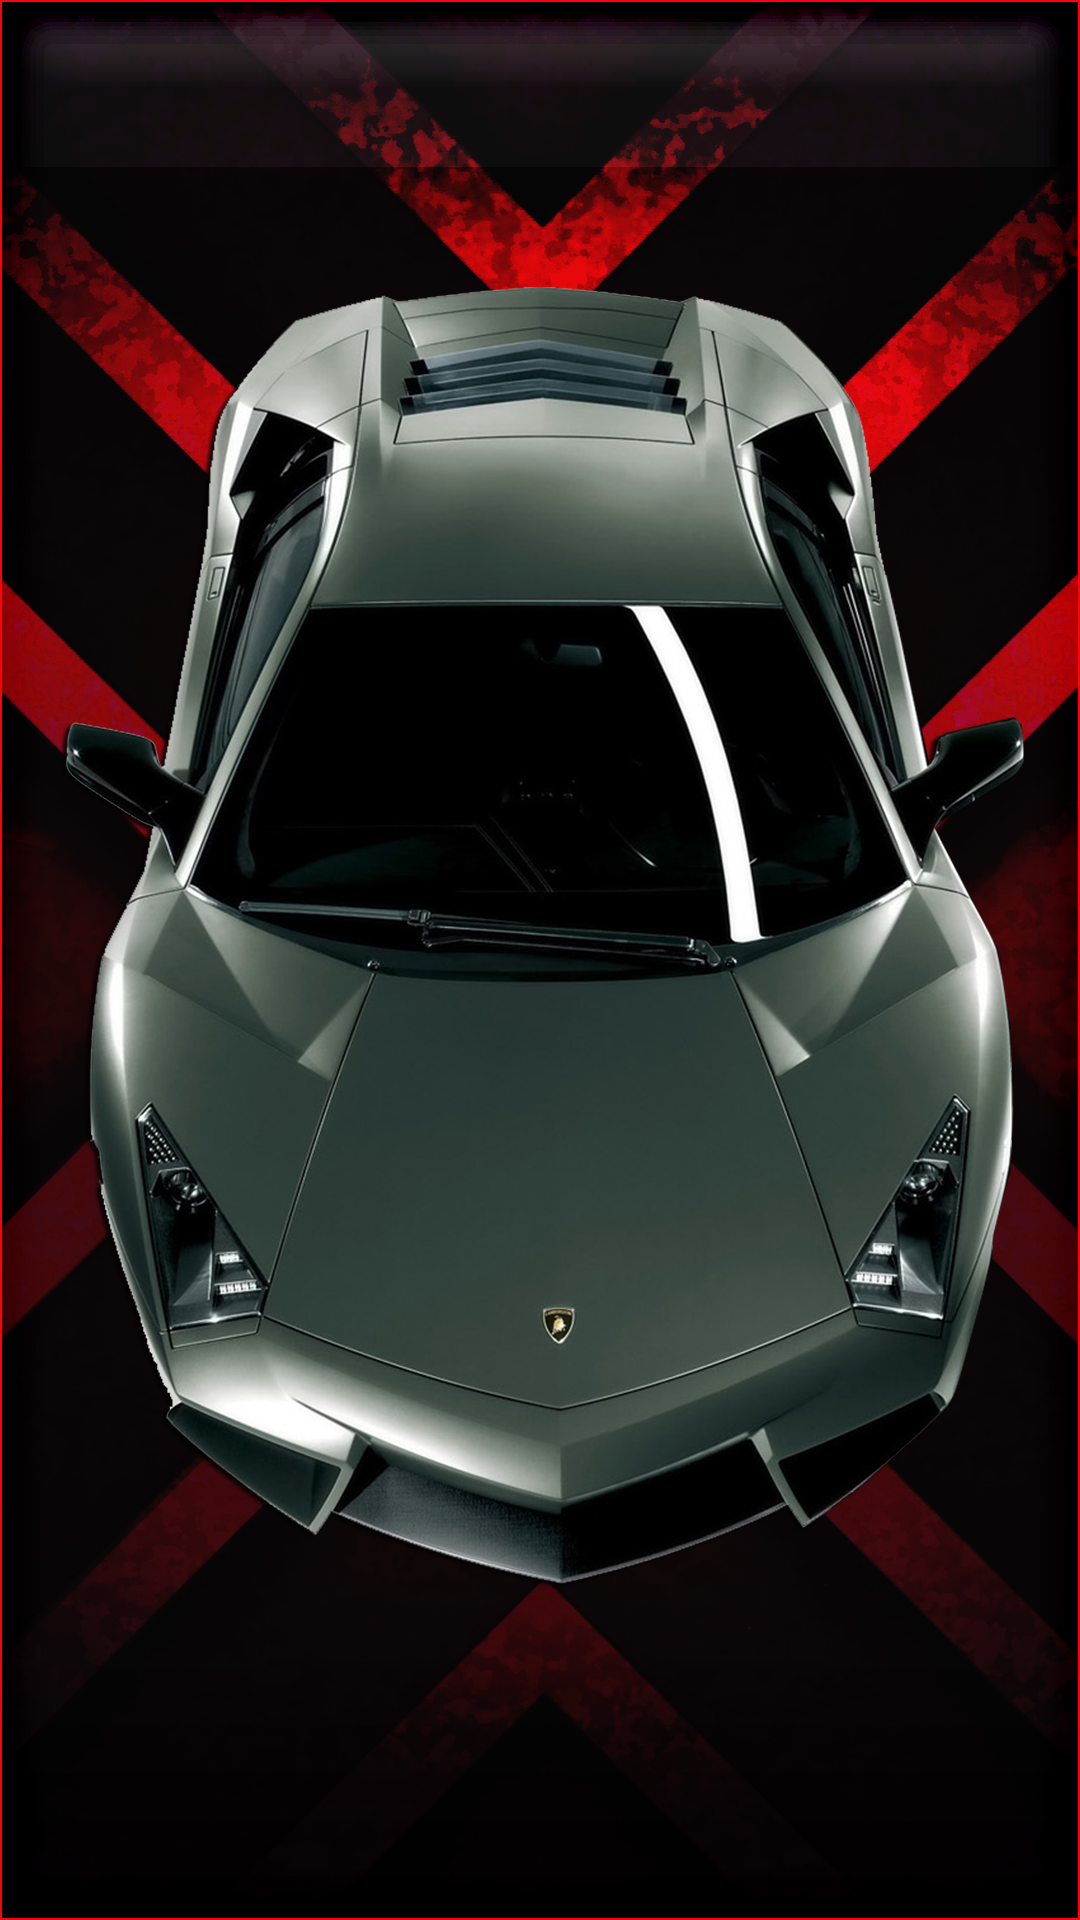 Download Our Hd Lamborghini Car Wallpaper For Android Phones 0152